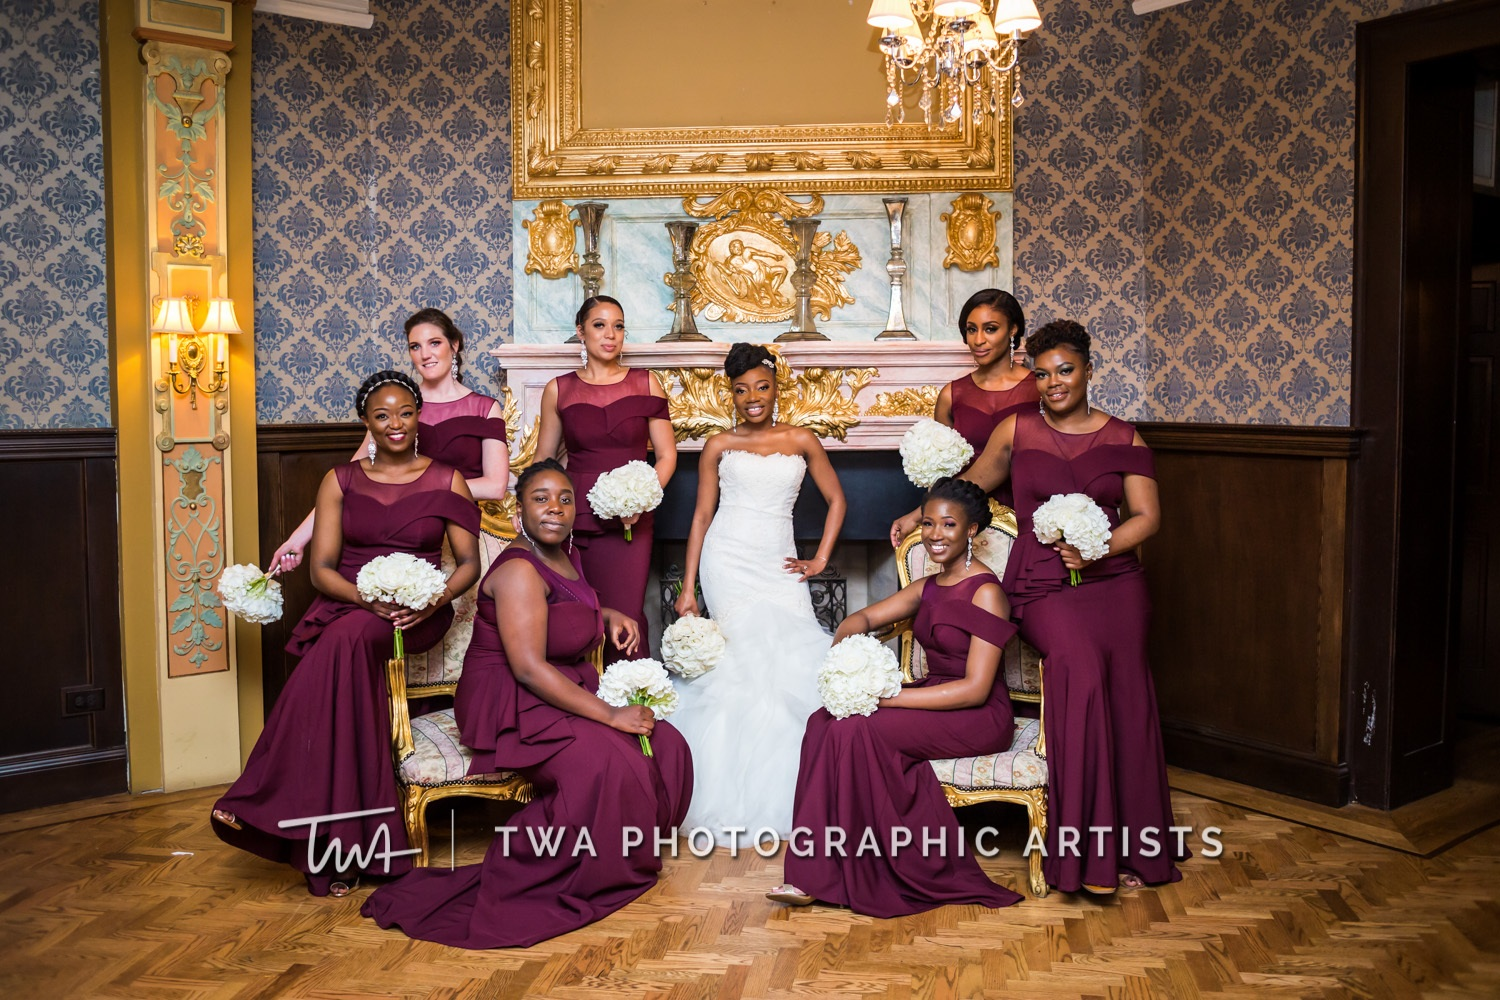 Chicago-Wedding-Photographer-TWA-Photographic-Artists-Stan-Mansion_Ityavyar_Oakley_MJ-0506-1